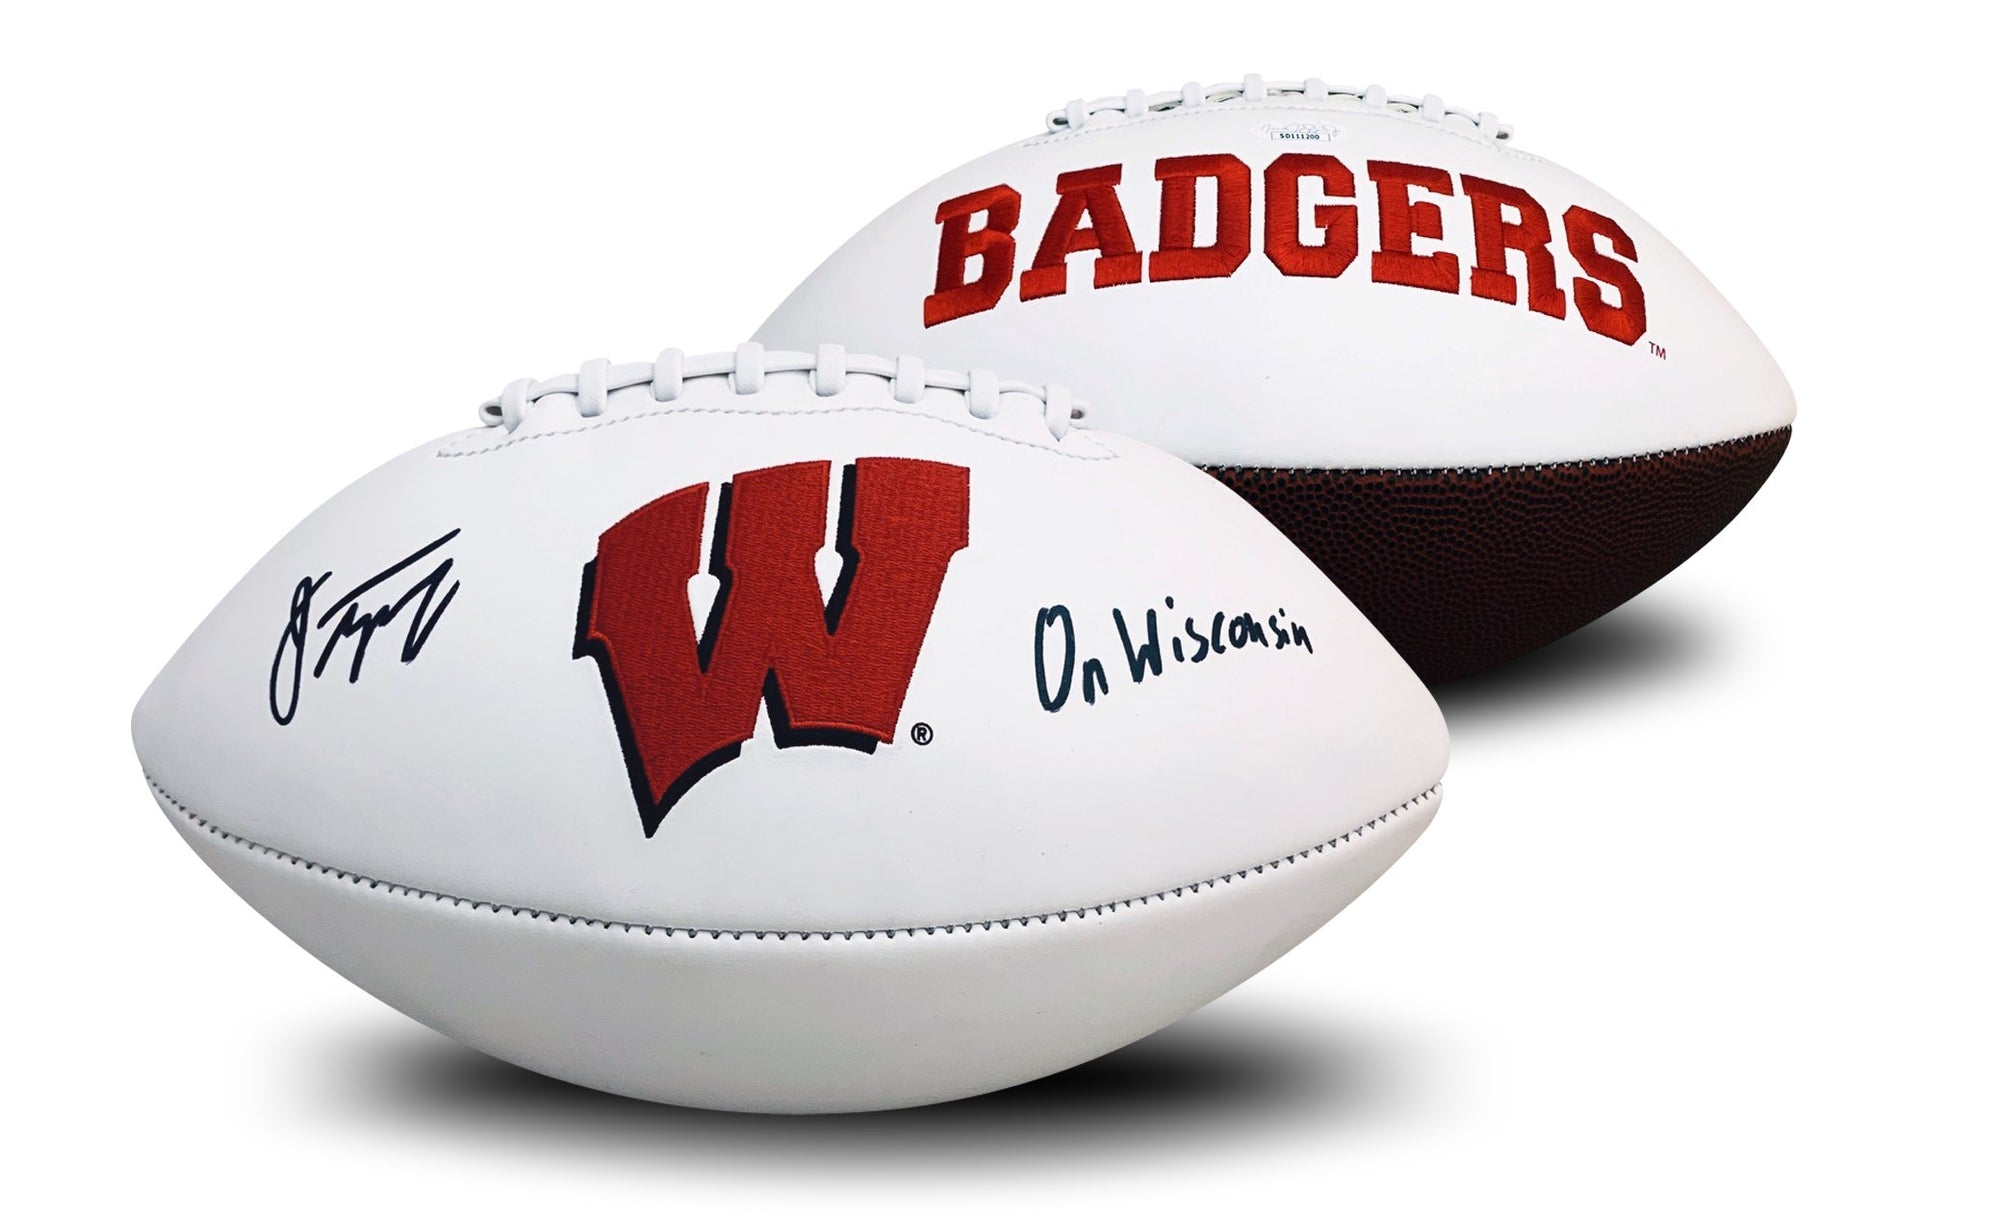 Jonathan Taylor Autographed Wisconsin Badgers Signed Full Size White Panel Logo Football ON WISCONSIN JSA COA-Powers Sports Memorabilia